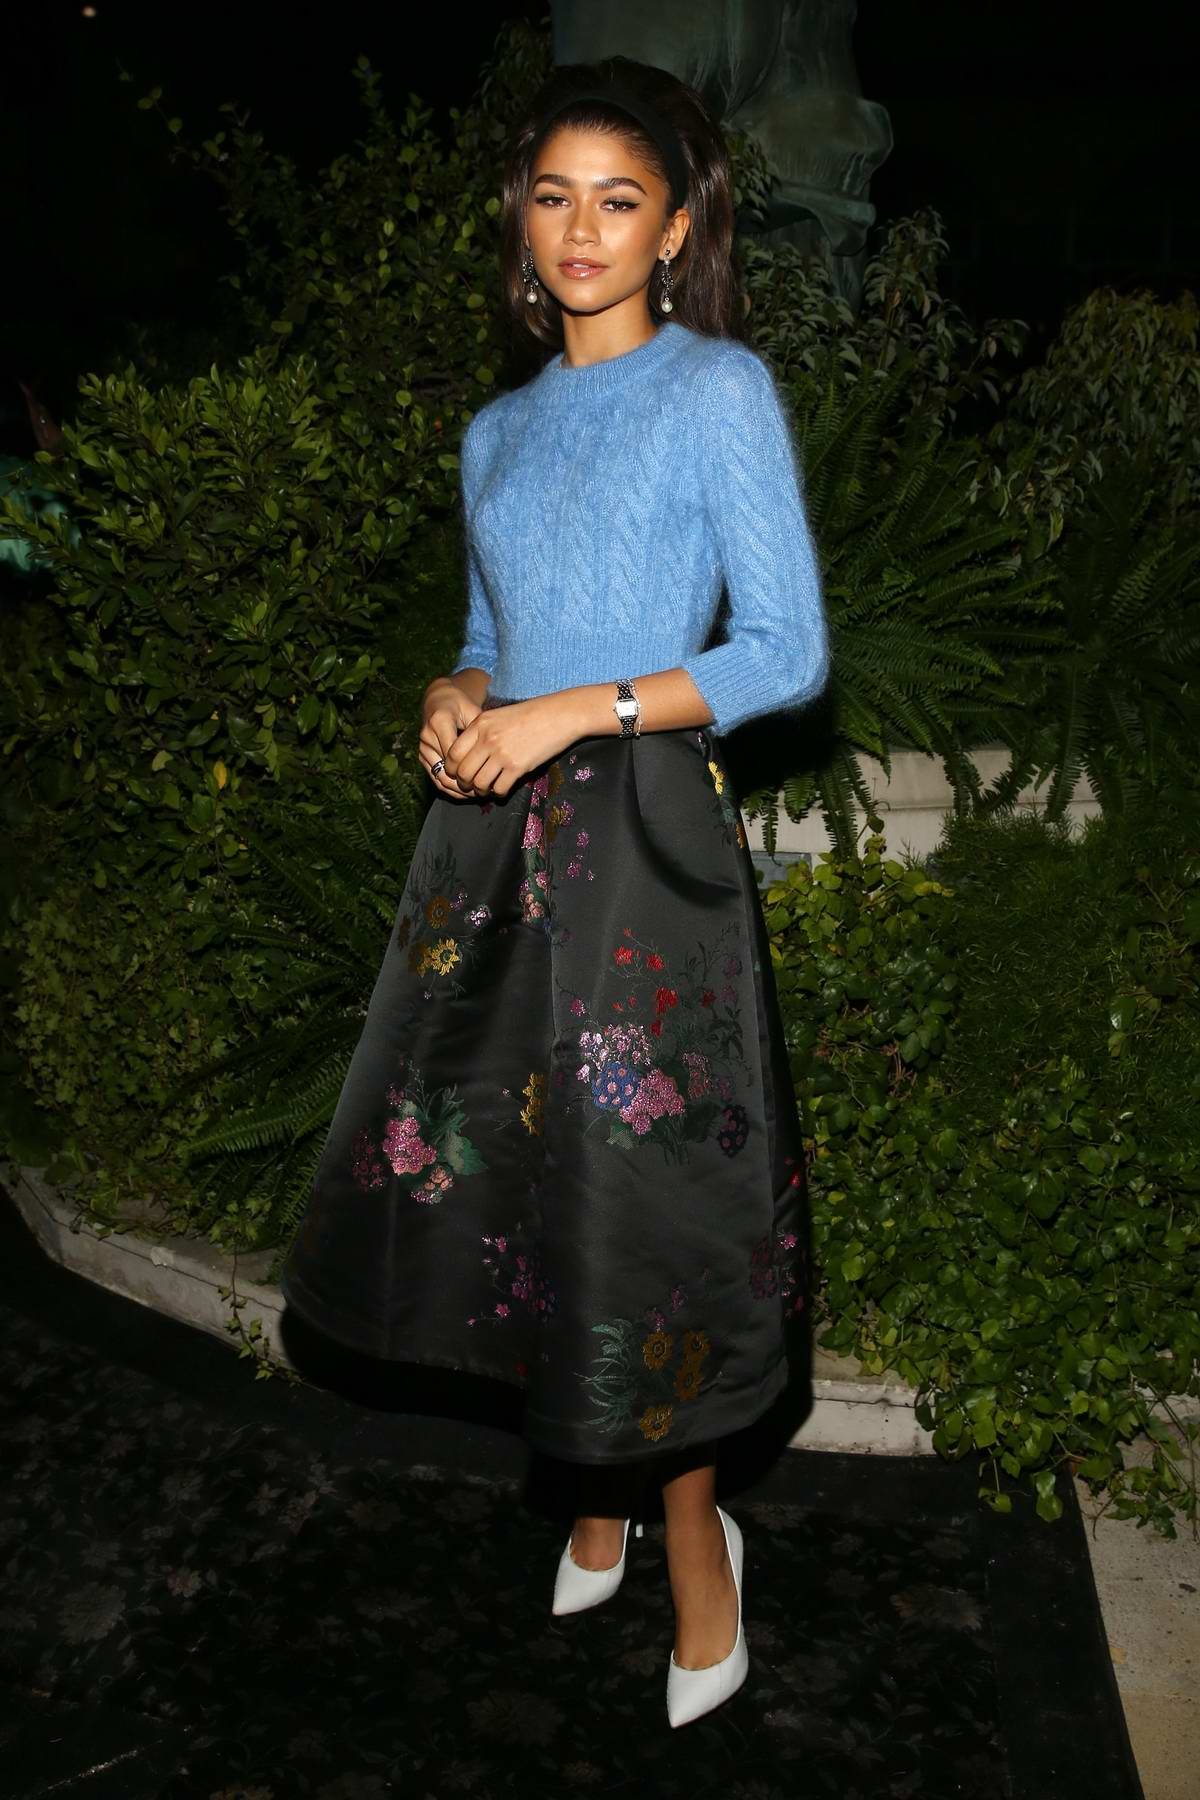 Zendaya Coleman at the Erdem X H&M launch event and show in Los Angeles